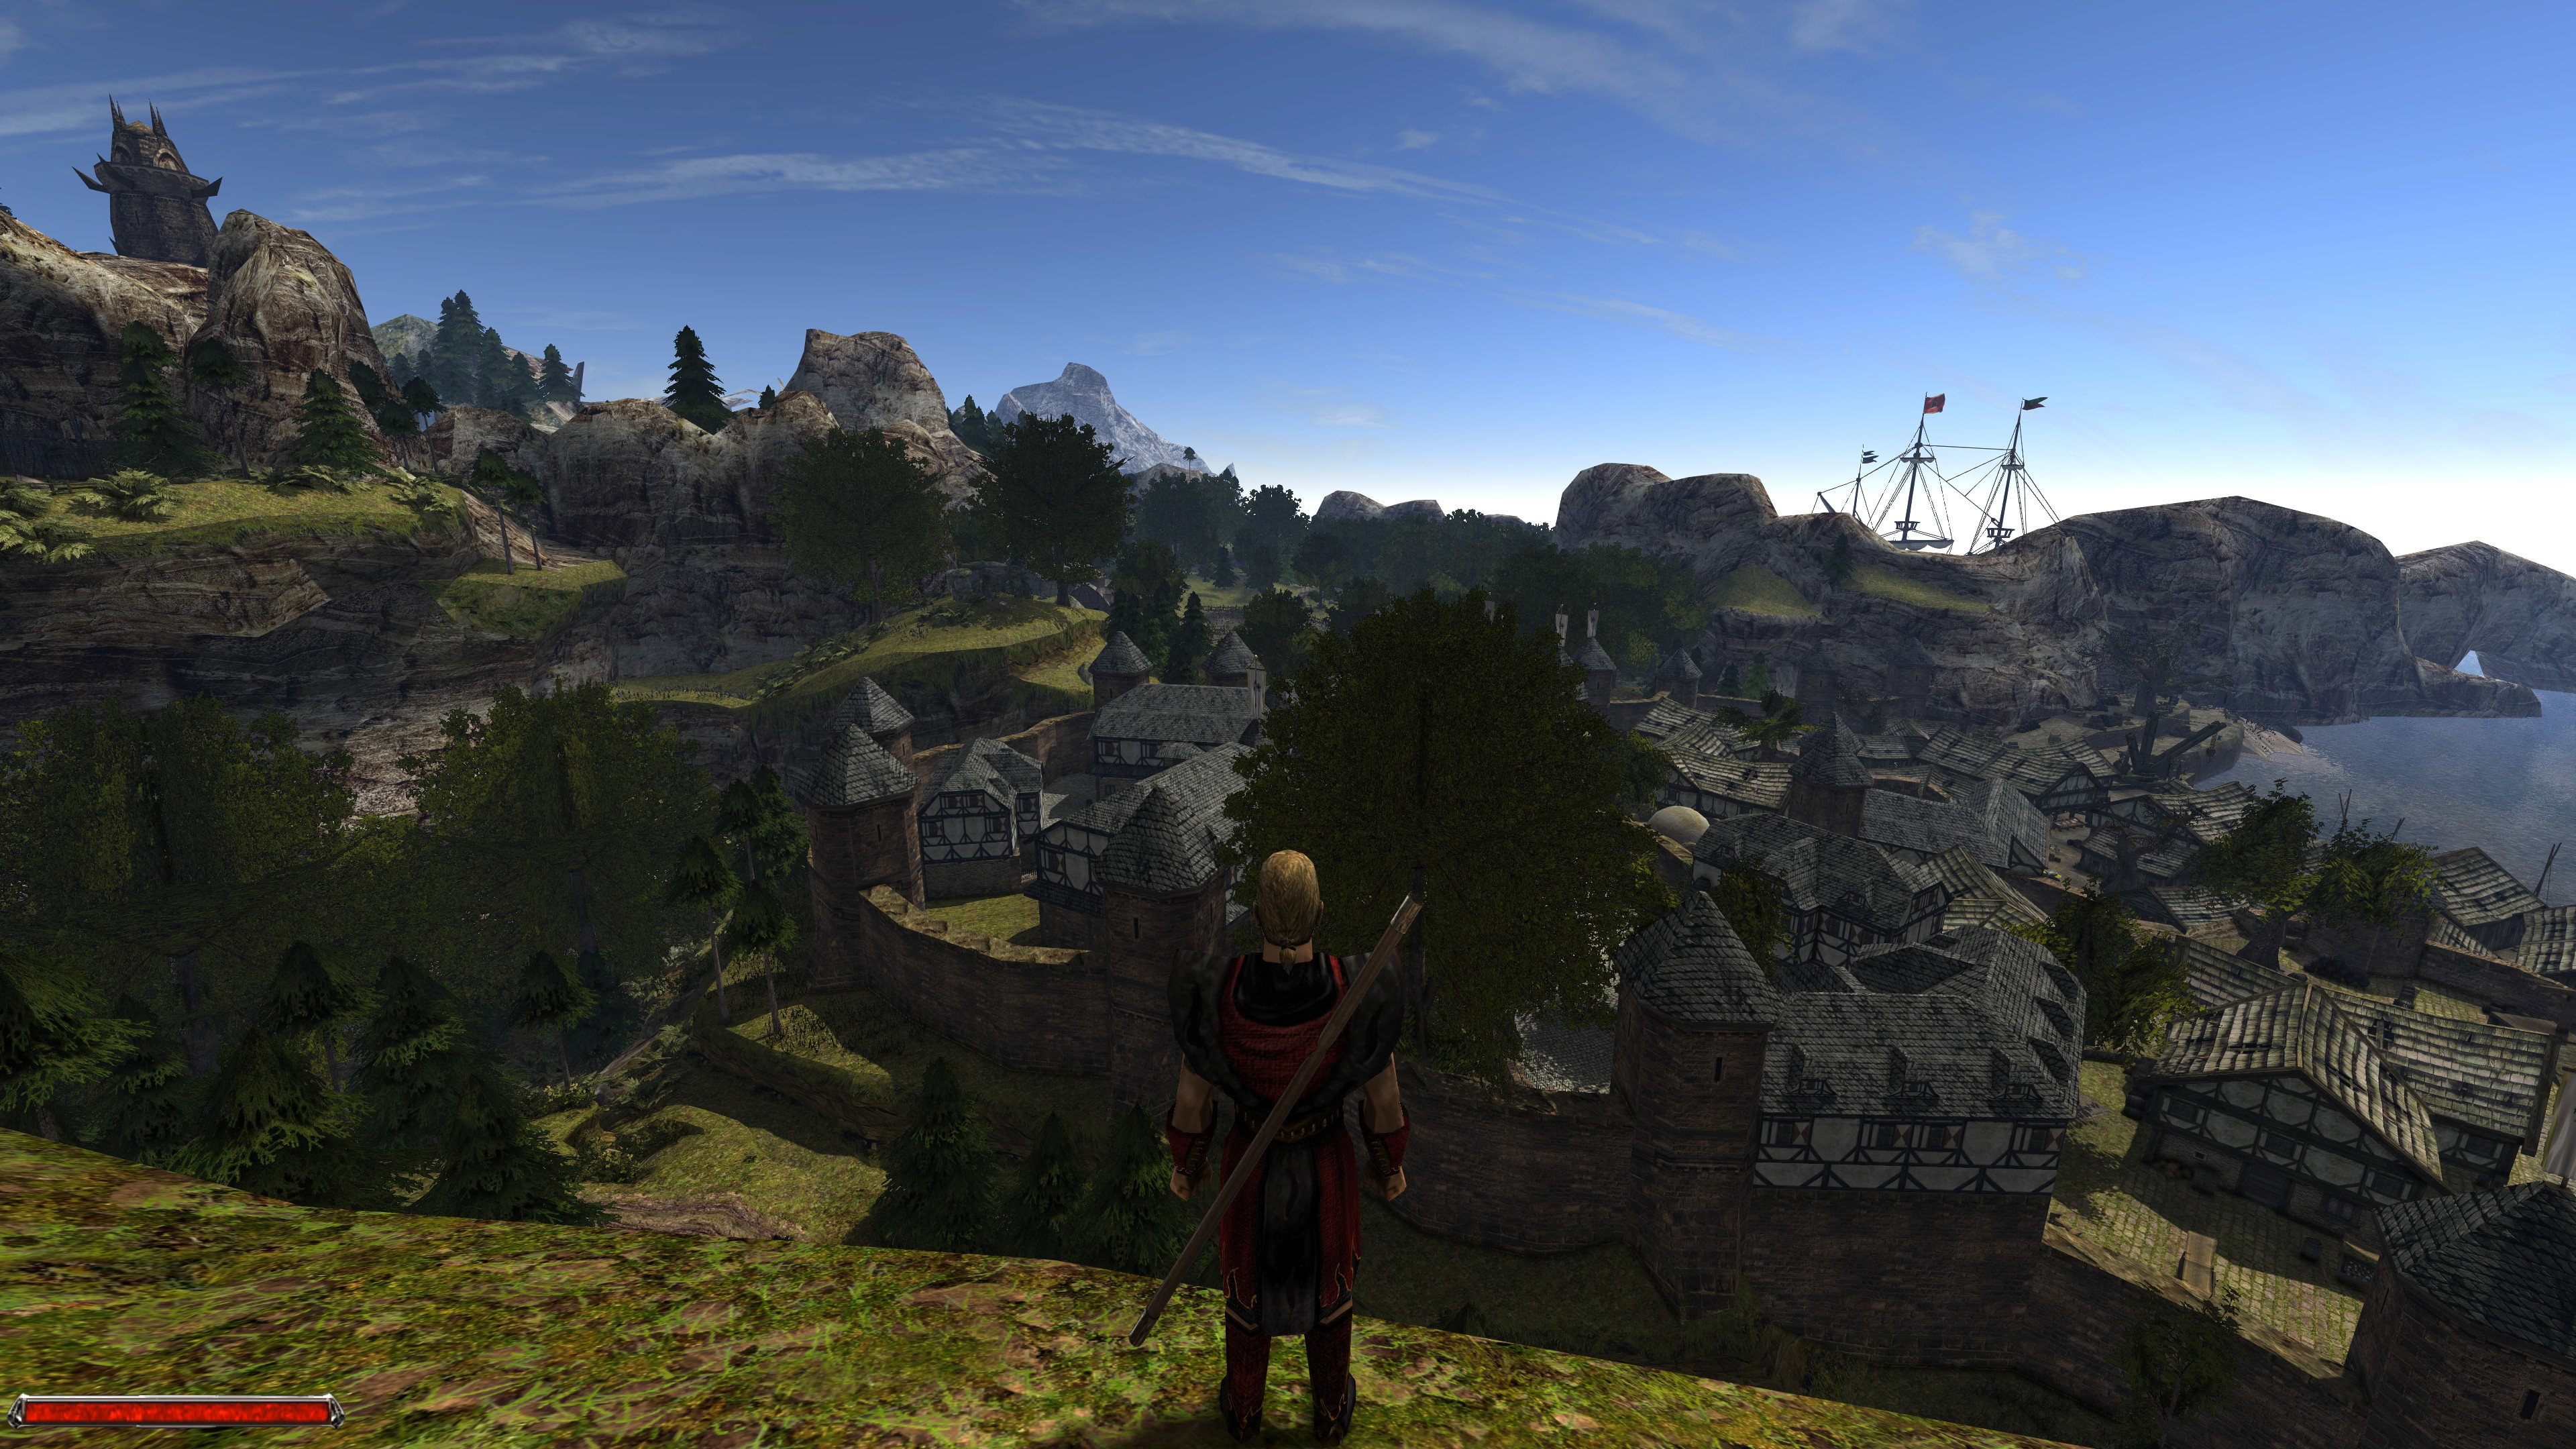 Gothic 2: Why the classic is still loved today